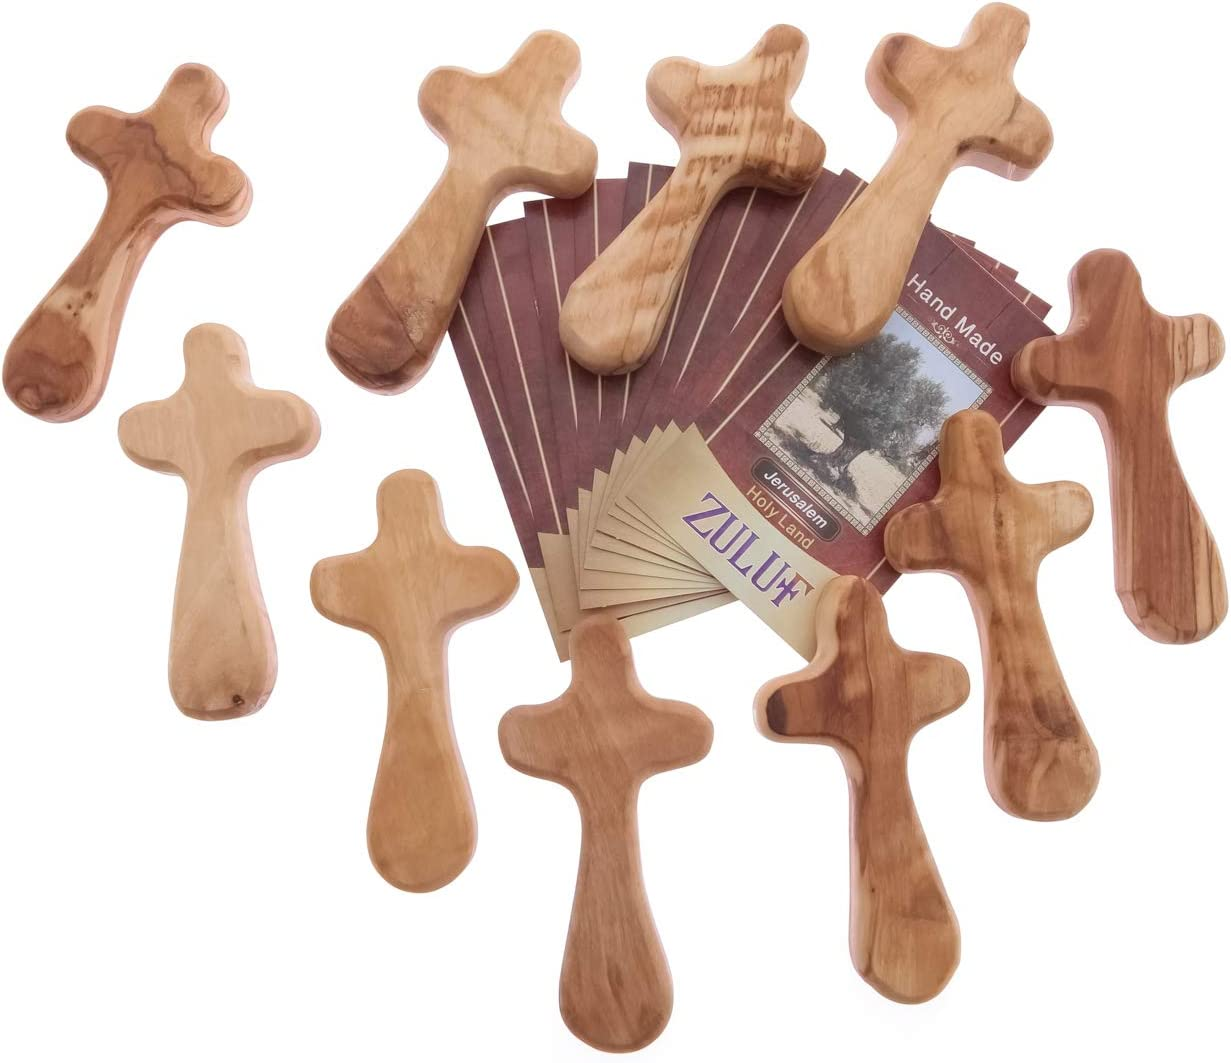 Zuluf 10 Medium Hand Crosses Wood Church Gifts with Certificates CRS108Z